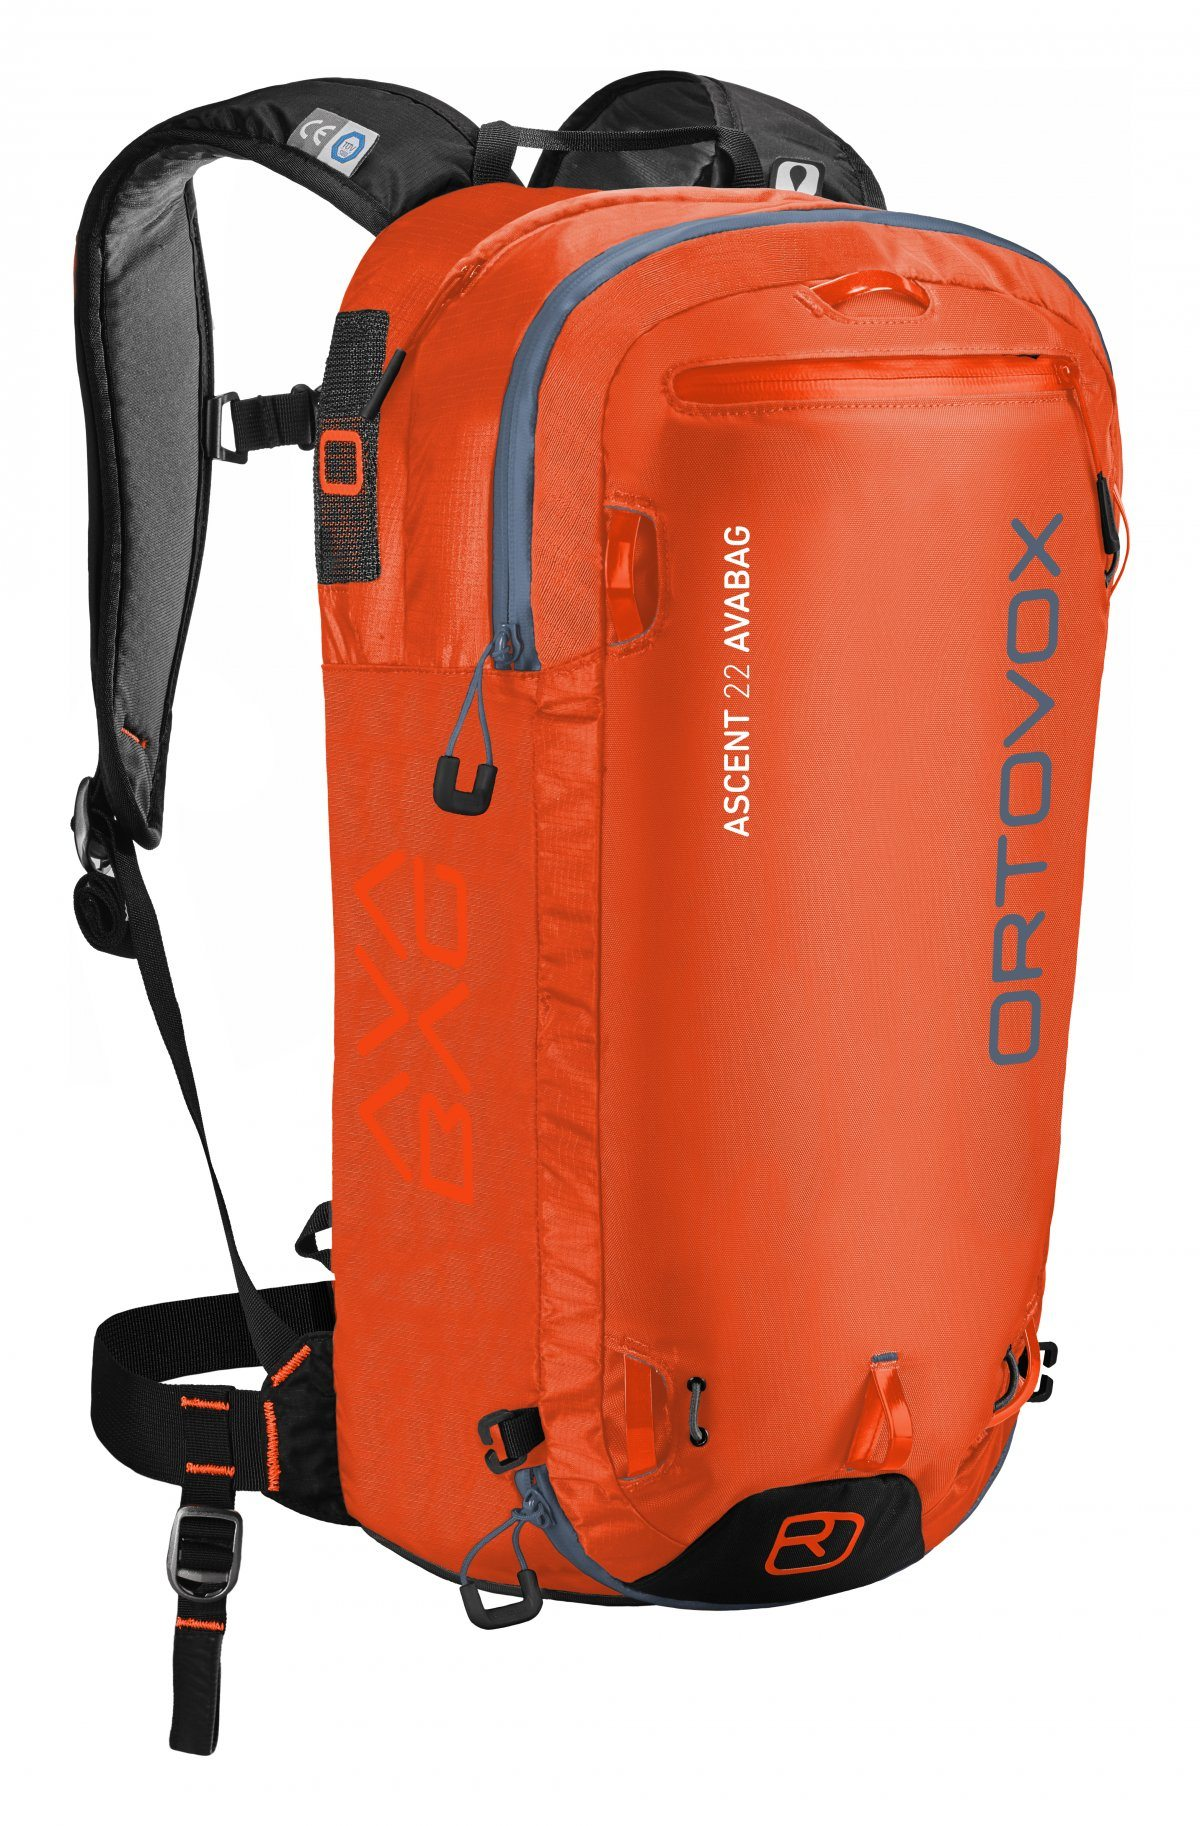 Ortovox Ascent 22 Avabag - Crazy Orange - Front View